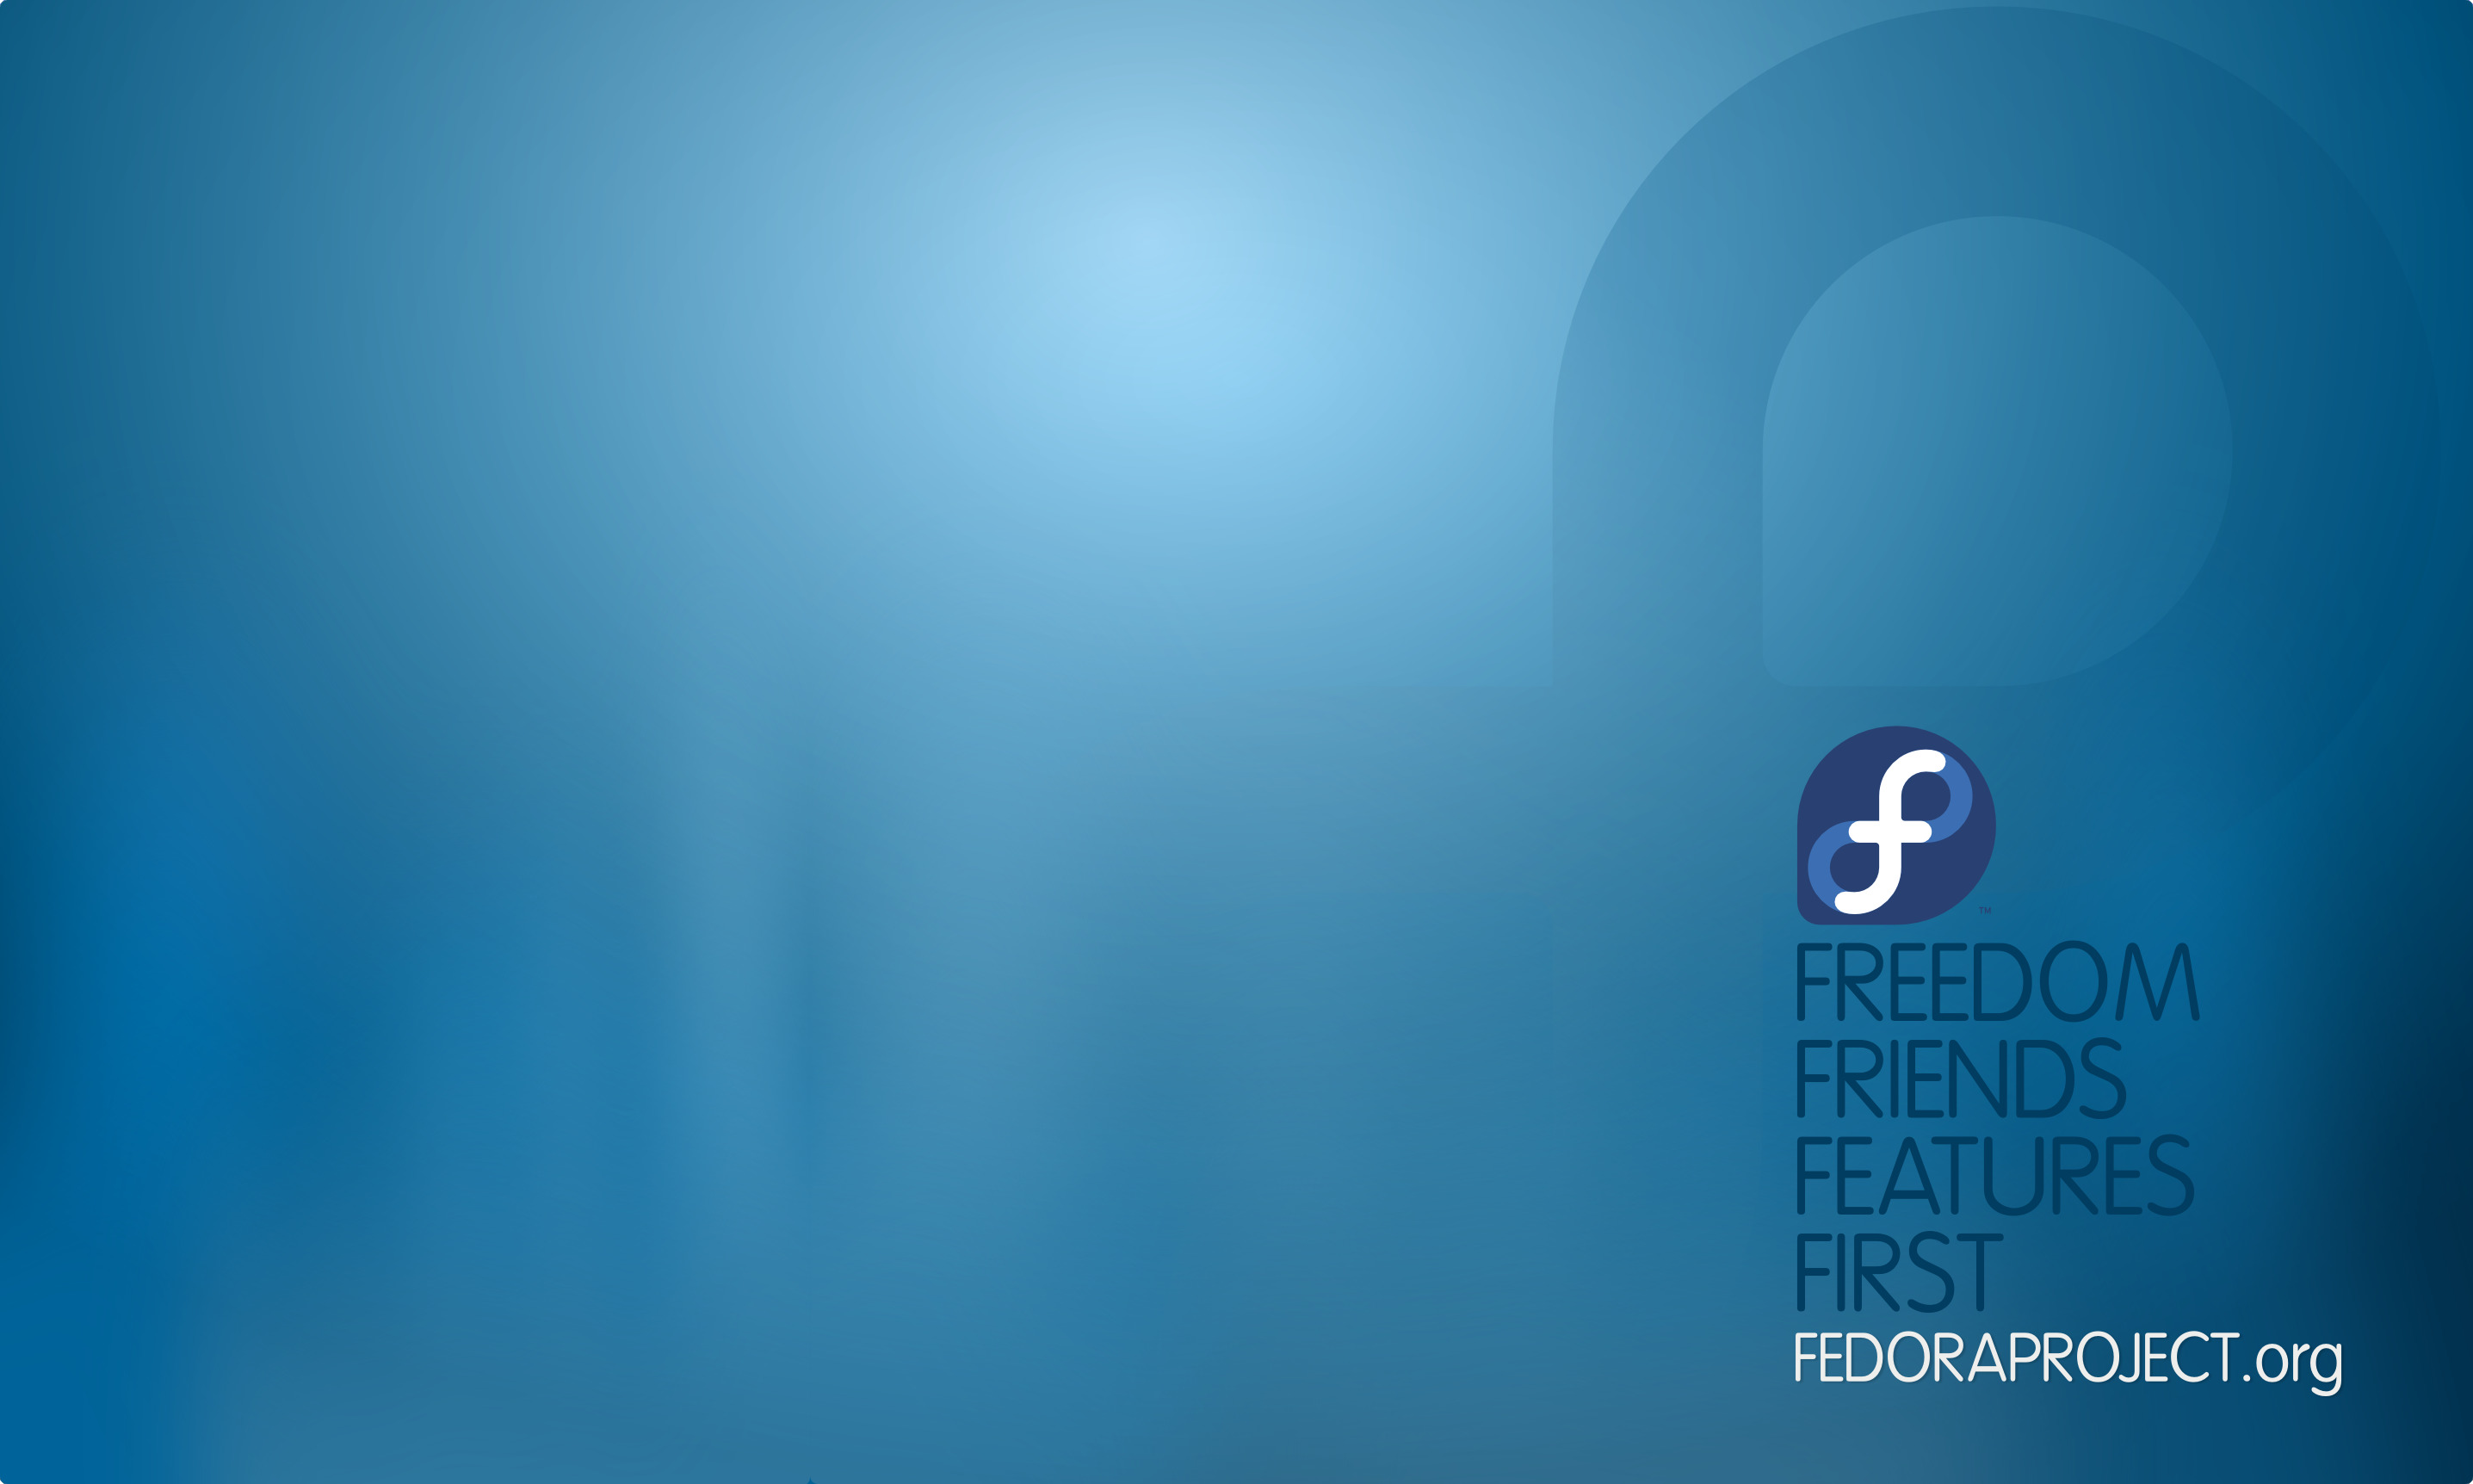 Linux Fedora Typography computer HD Wallpaper